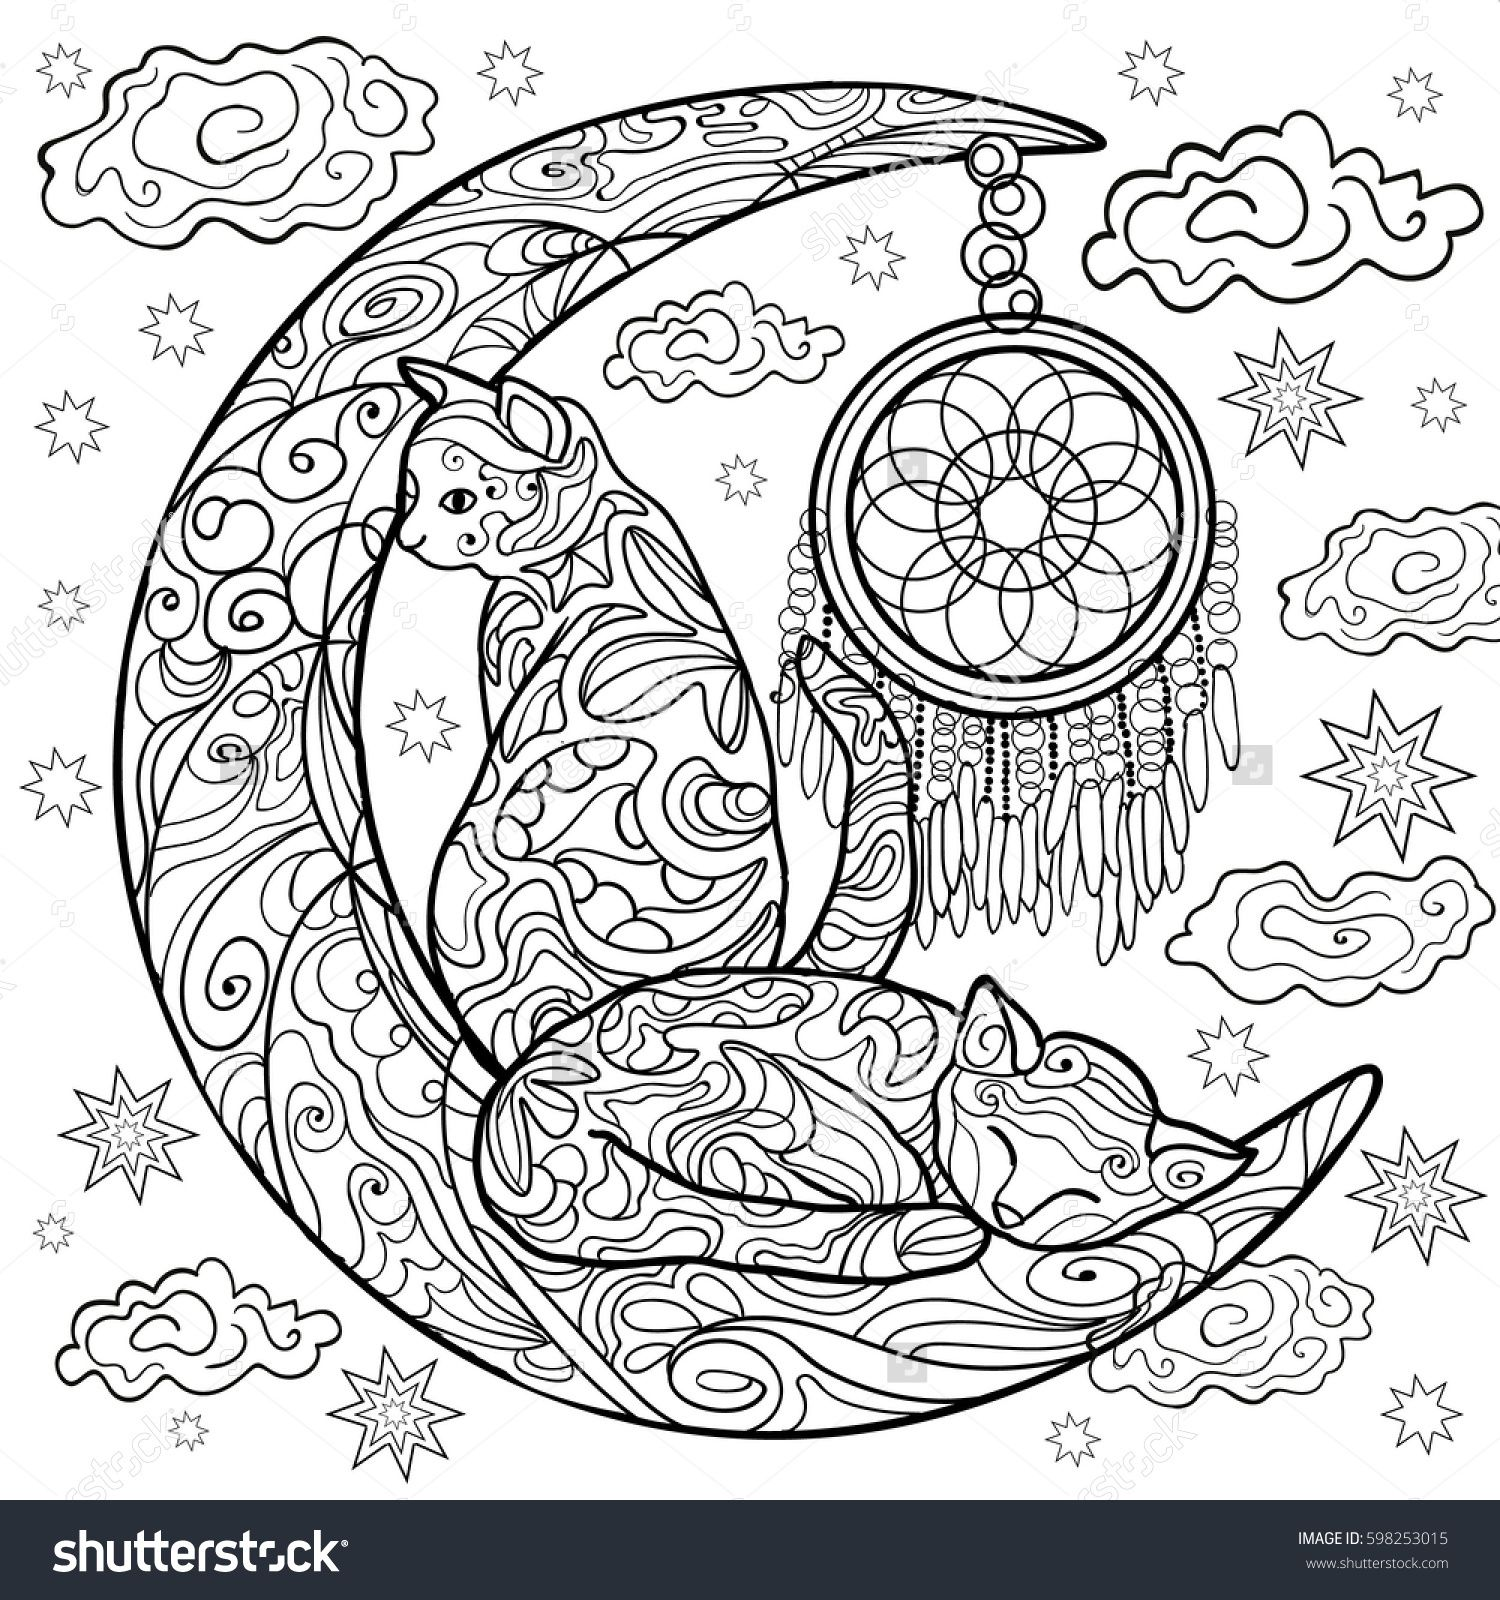 Beautiful Kittens Vector Illustration Cat Sleeps On The Moon Doodle Coloring Book For Adults Coloriage Chat Coloriage Mandala Animaux Coloriage Zen Animaux